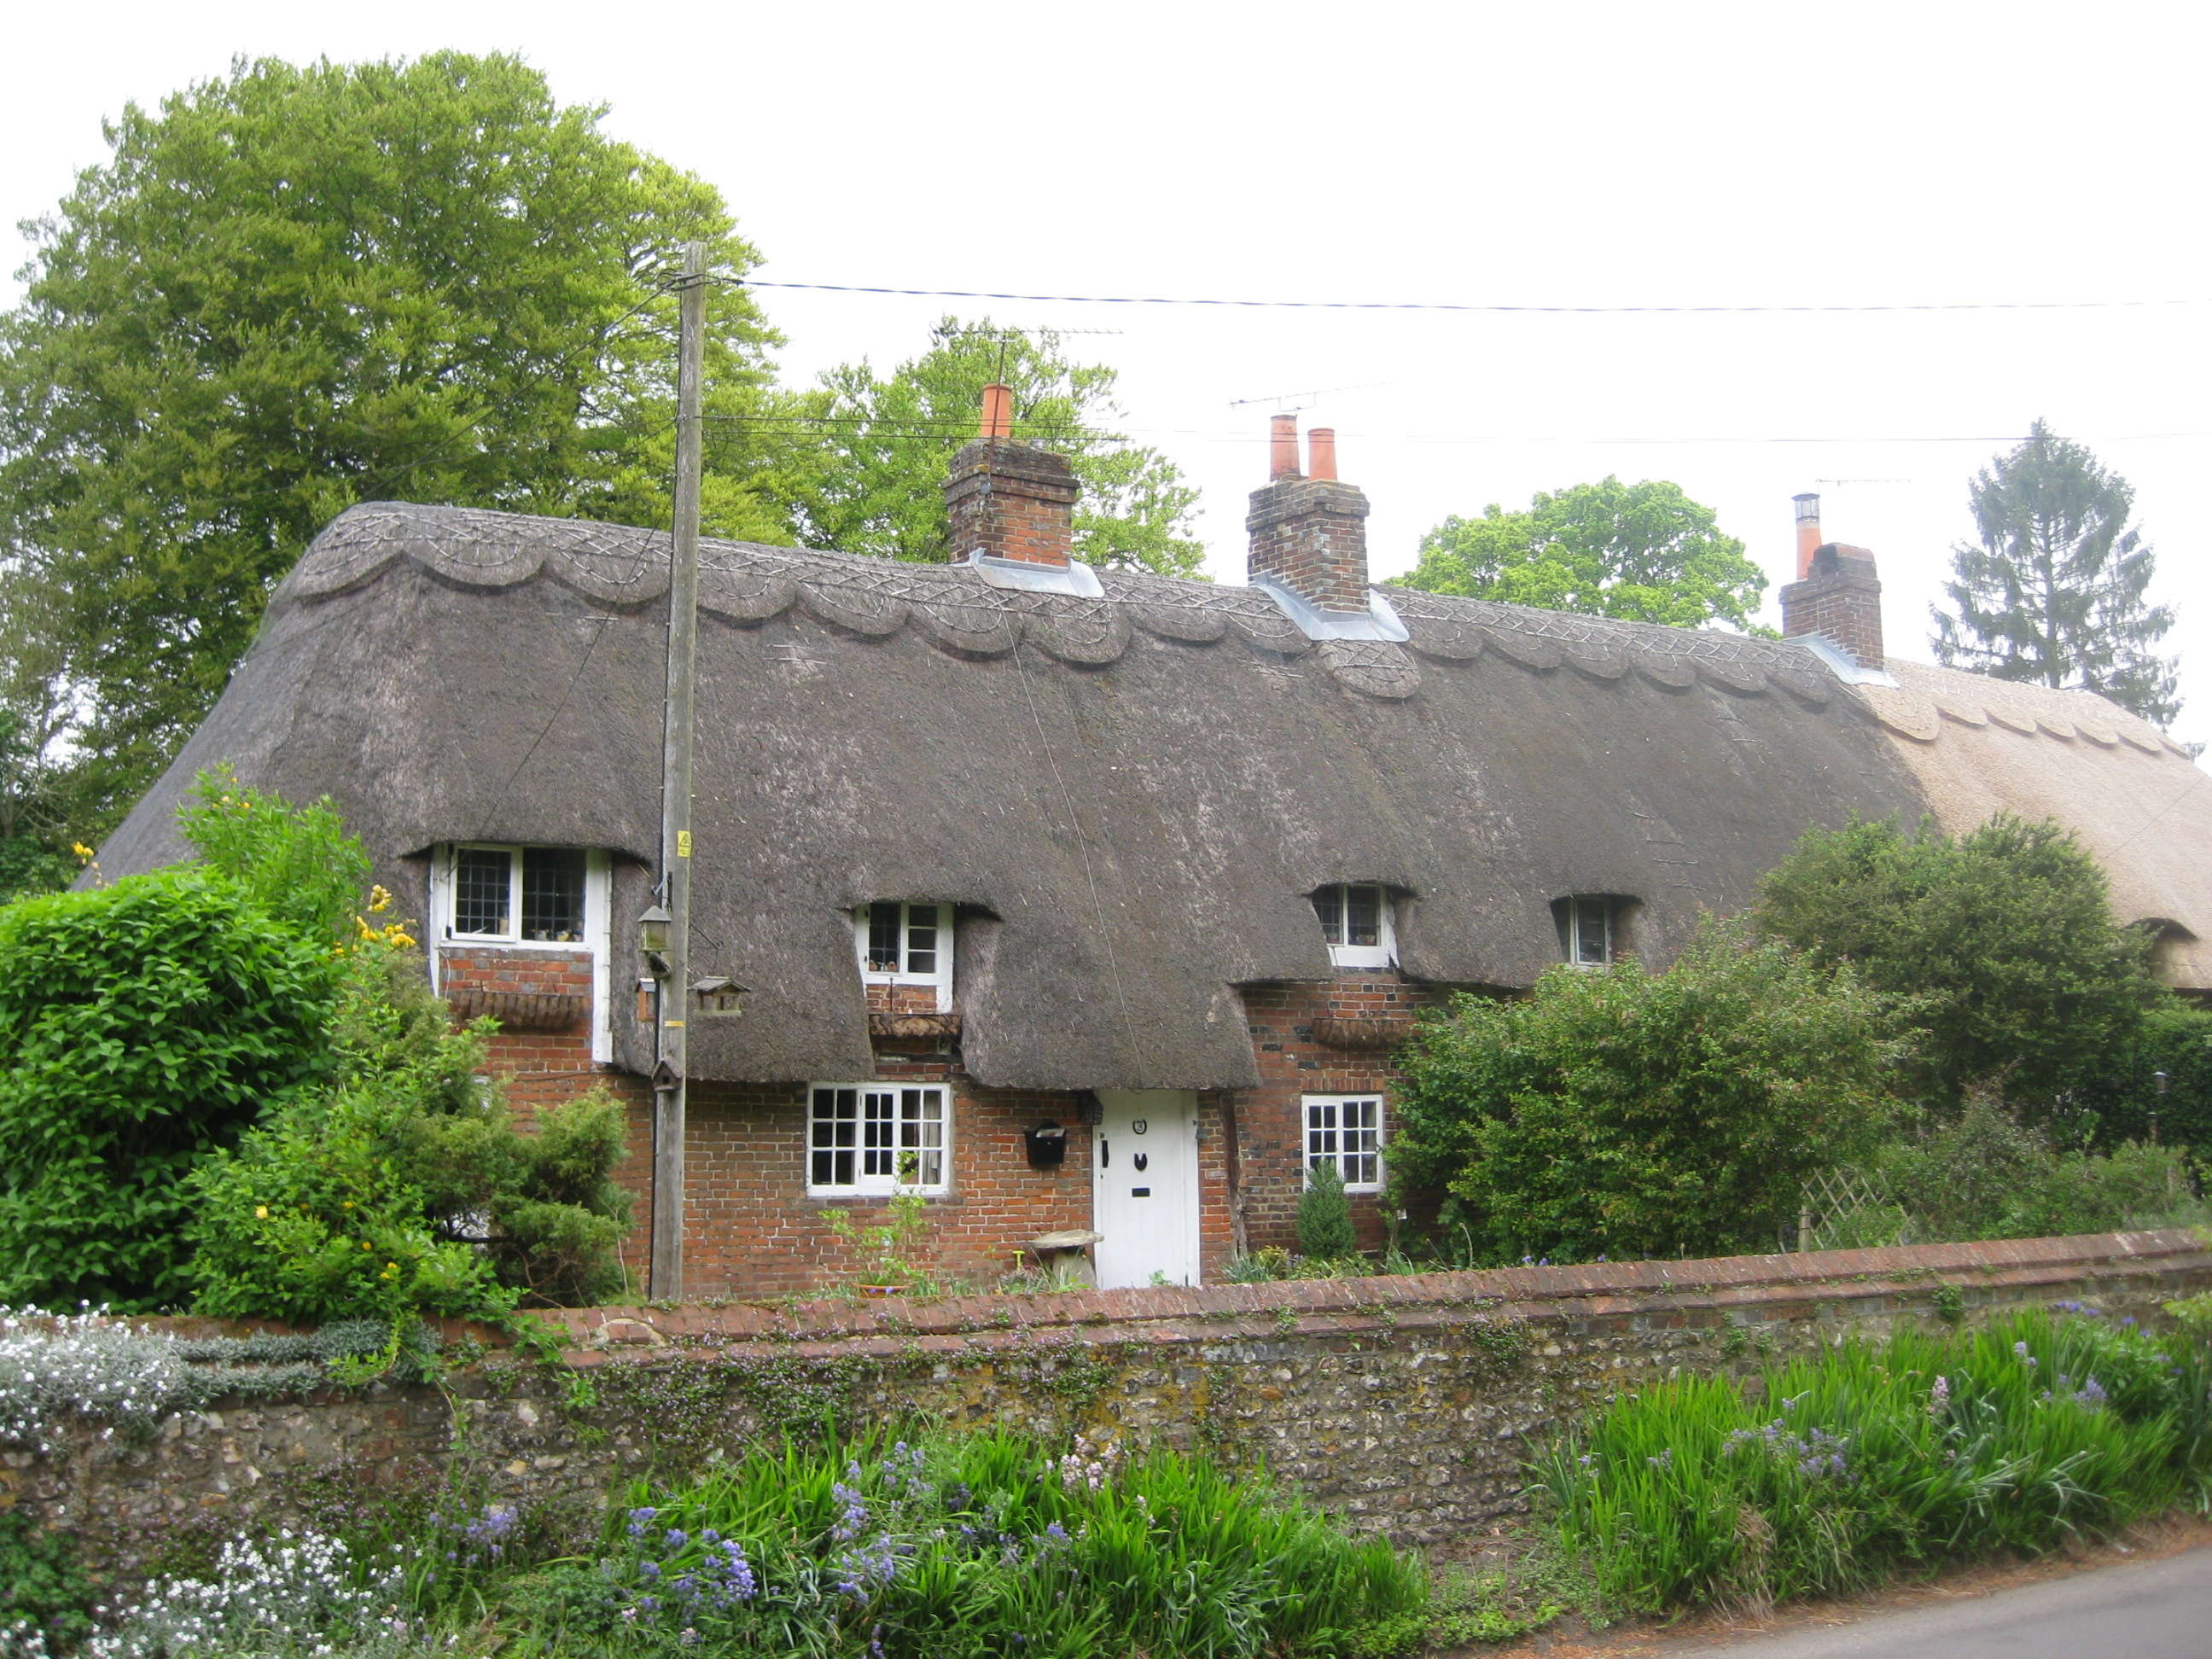 Another cottage in Chawton